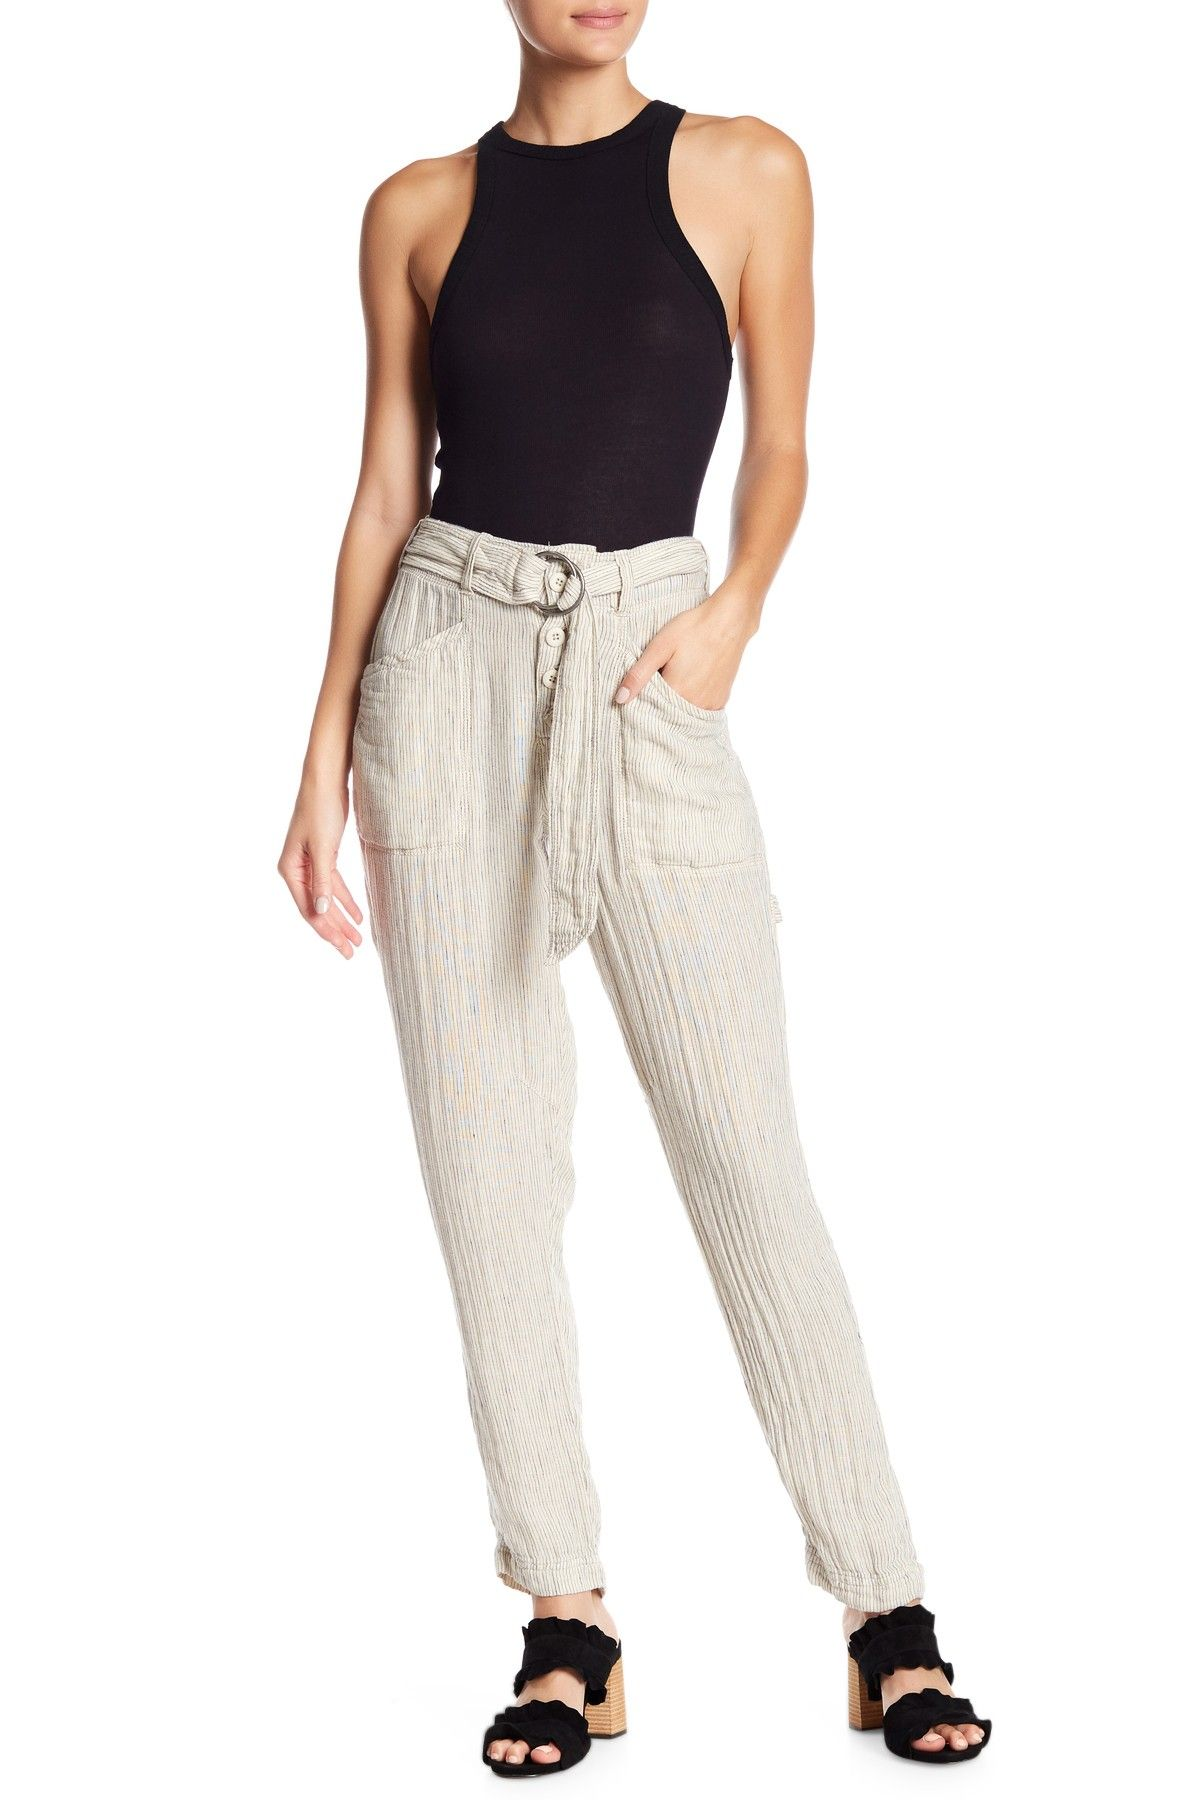 Free People Emerson Striped Belted Utility Pants Pants